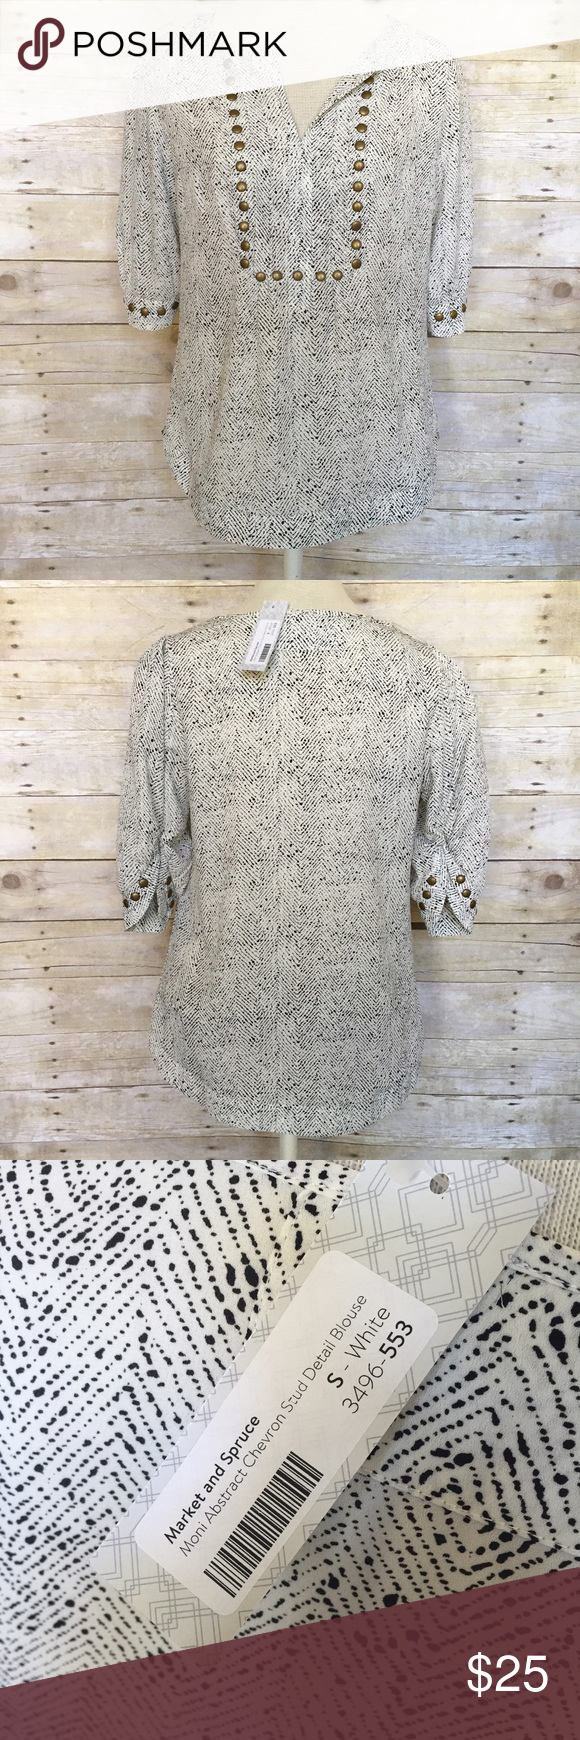 64fb1730533 Market Spruce Stitch Fix blouse Small NWT Market Spruce black and cream  Polyester blouse with brass